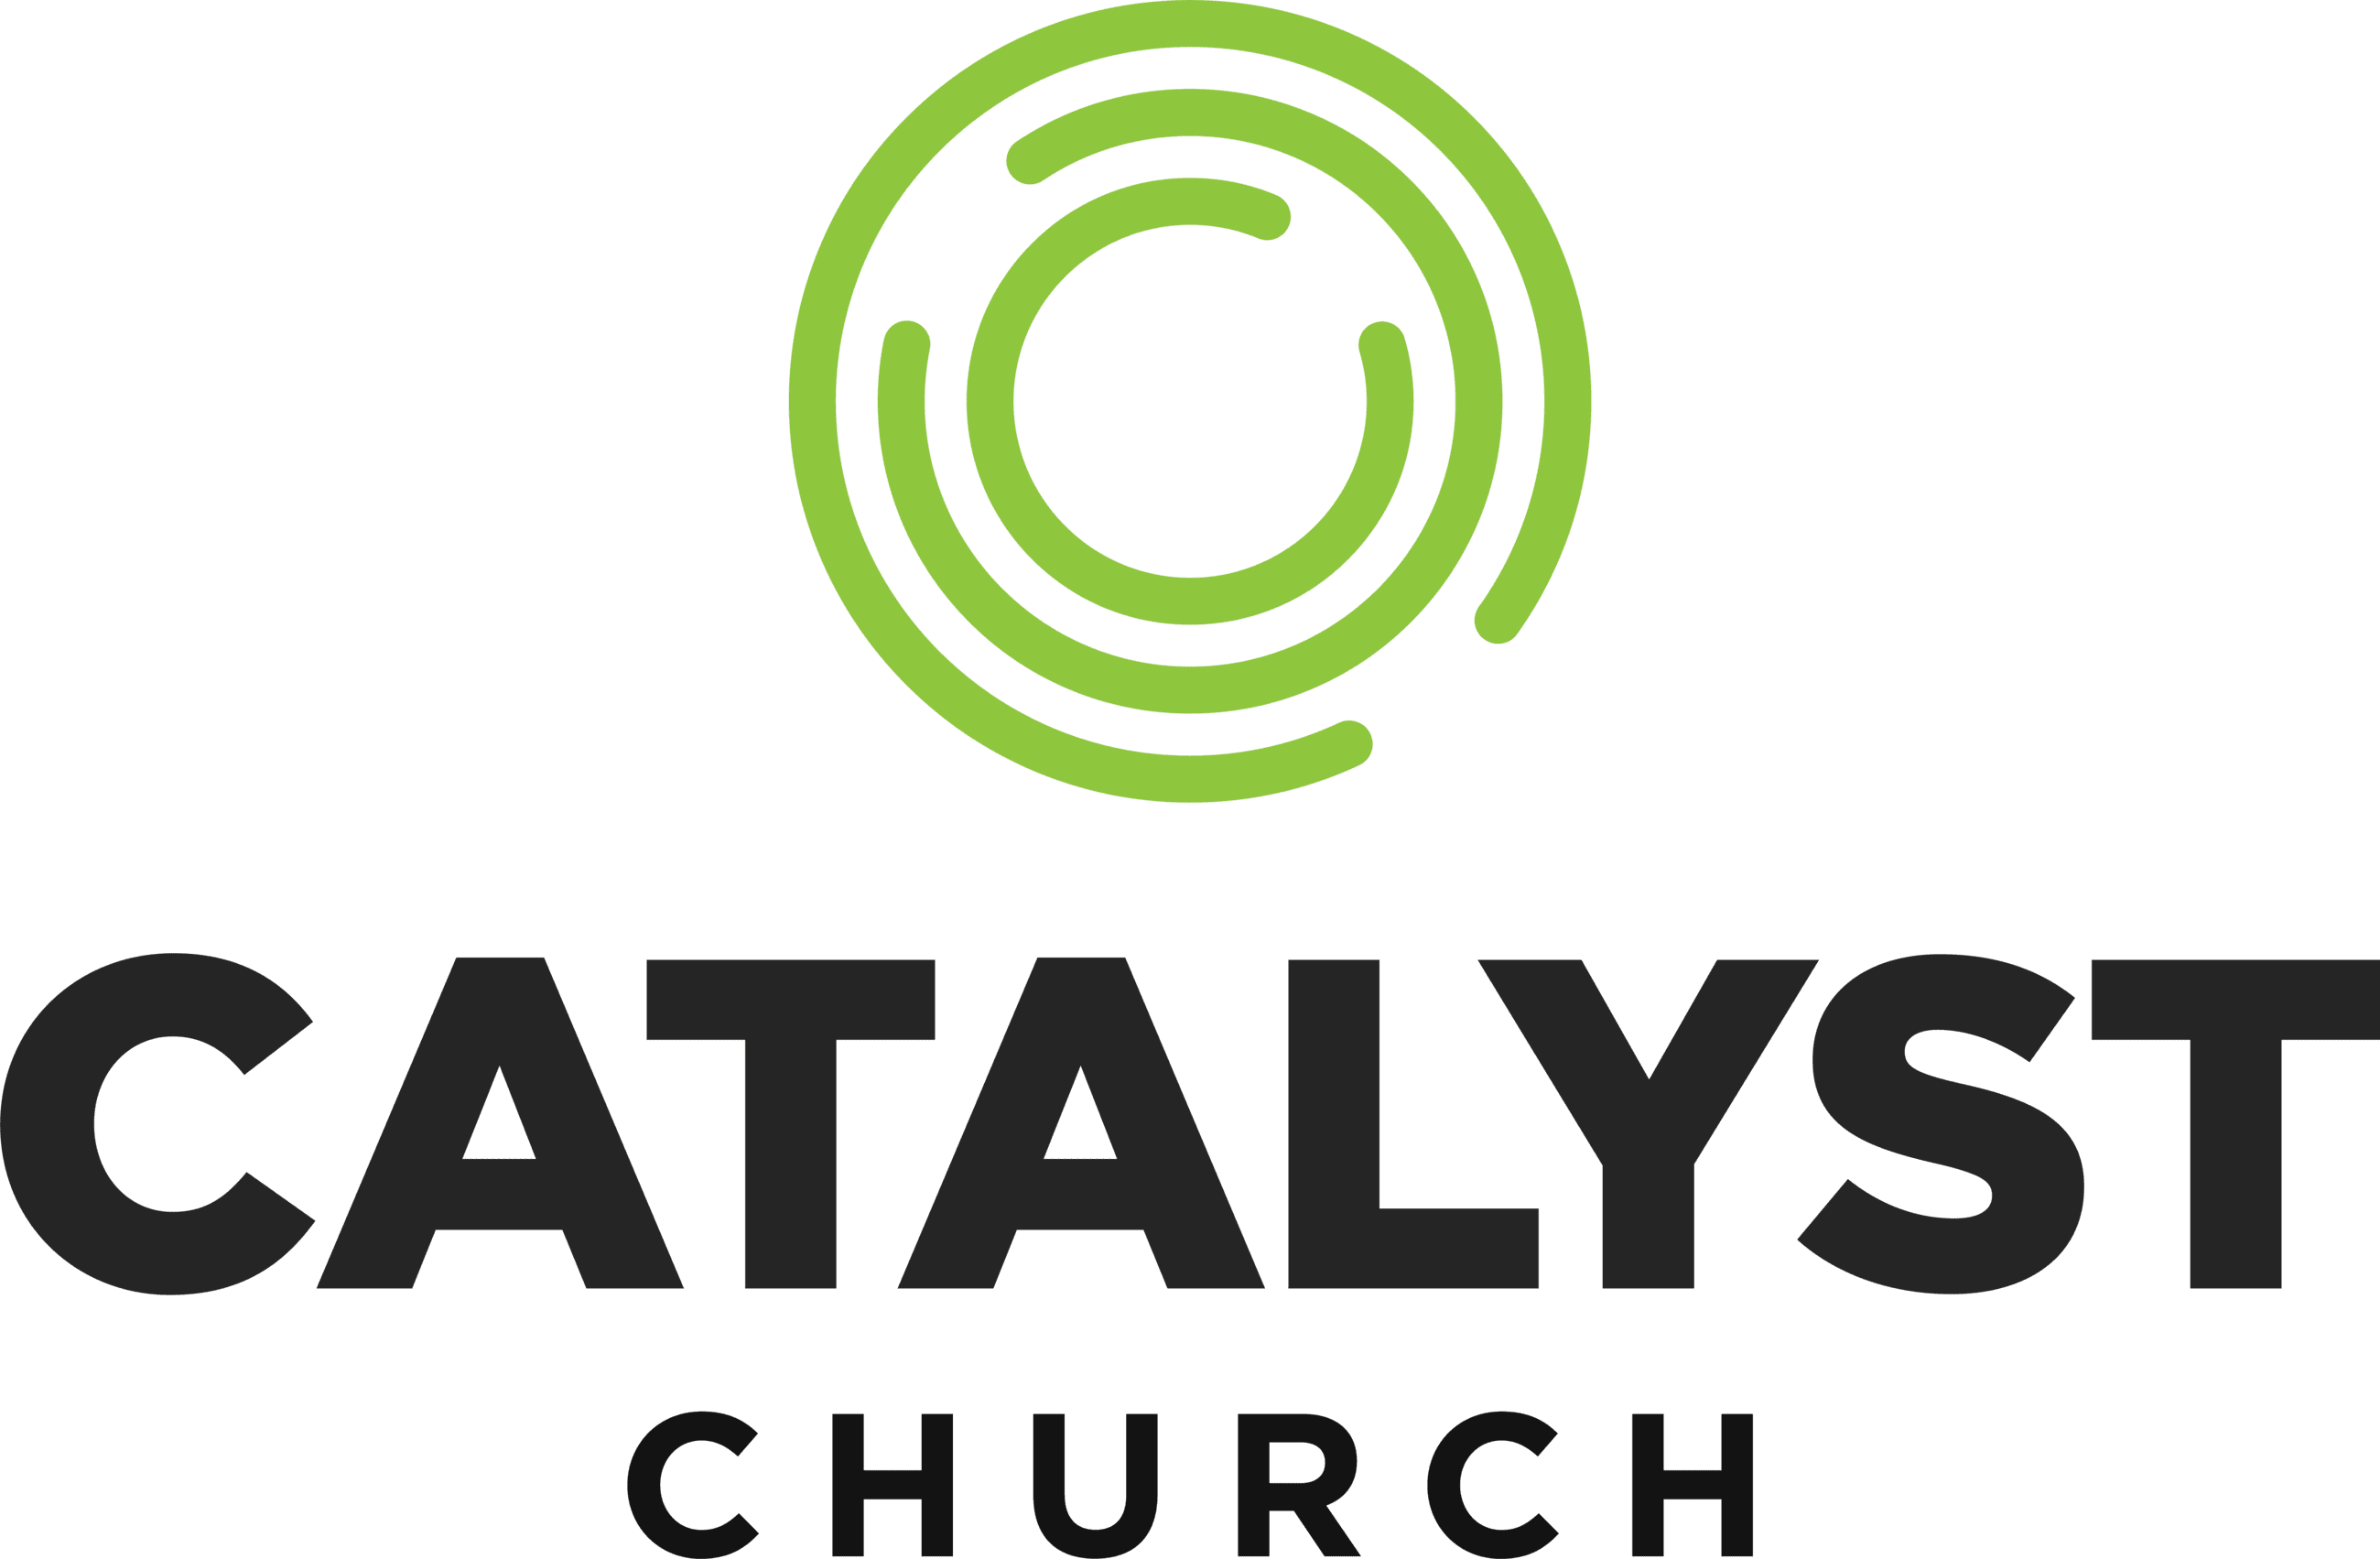 Catalyst Church logo